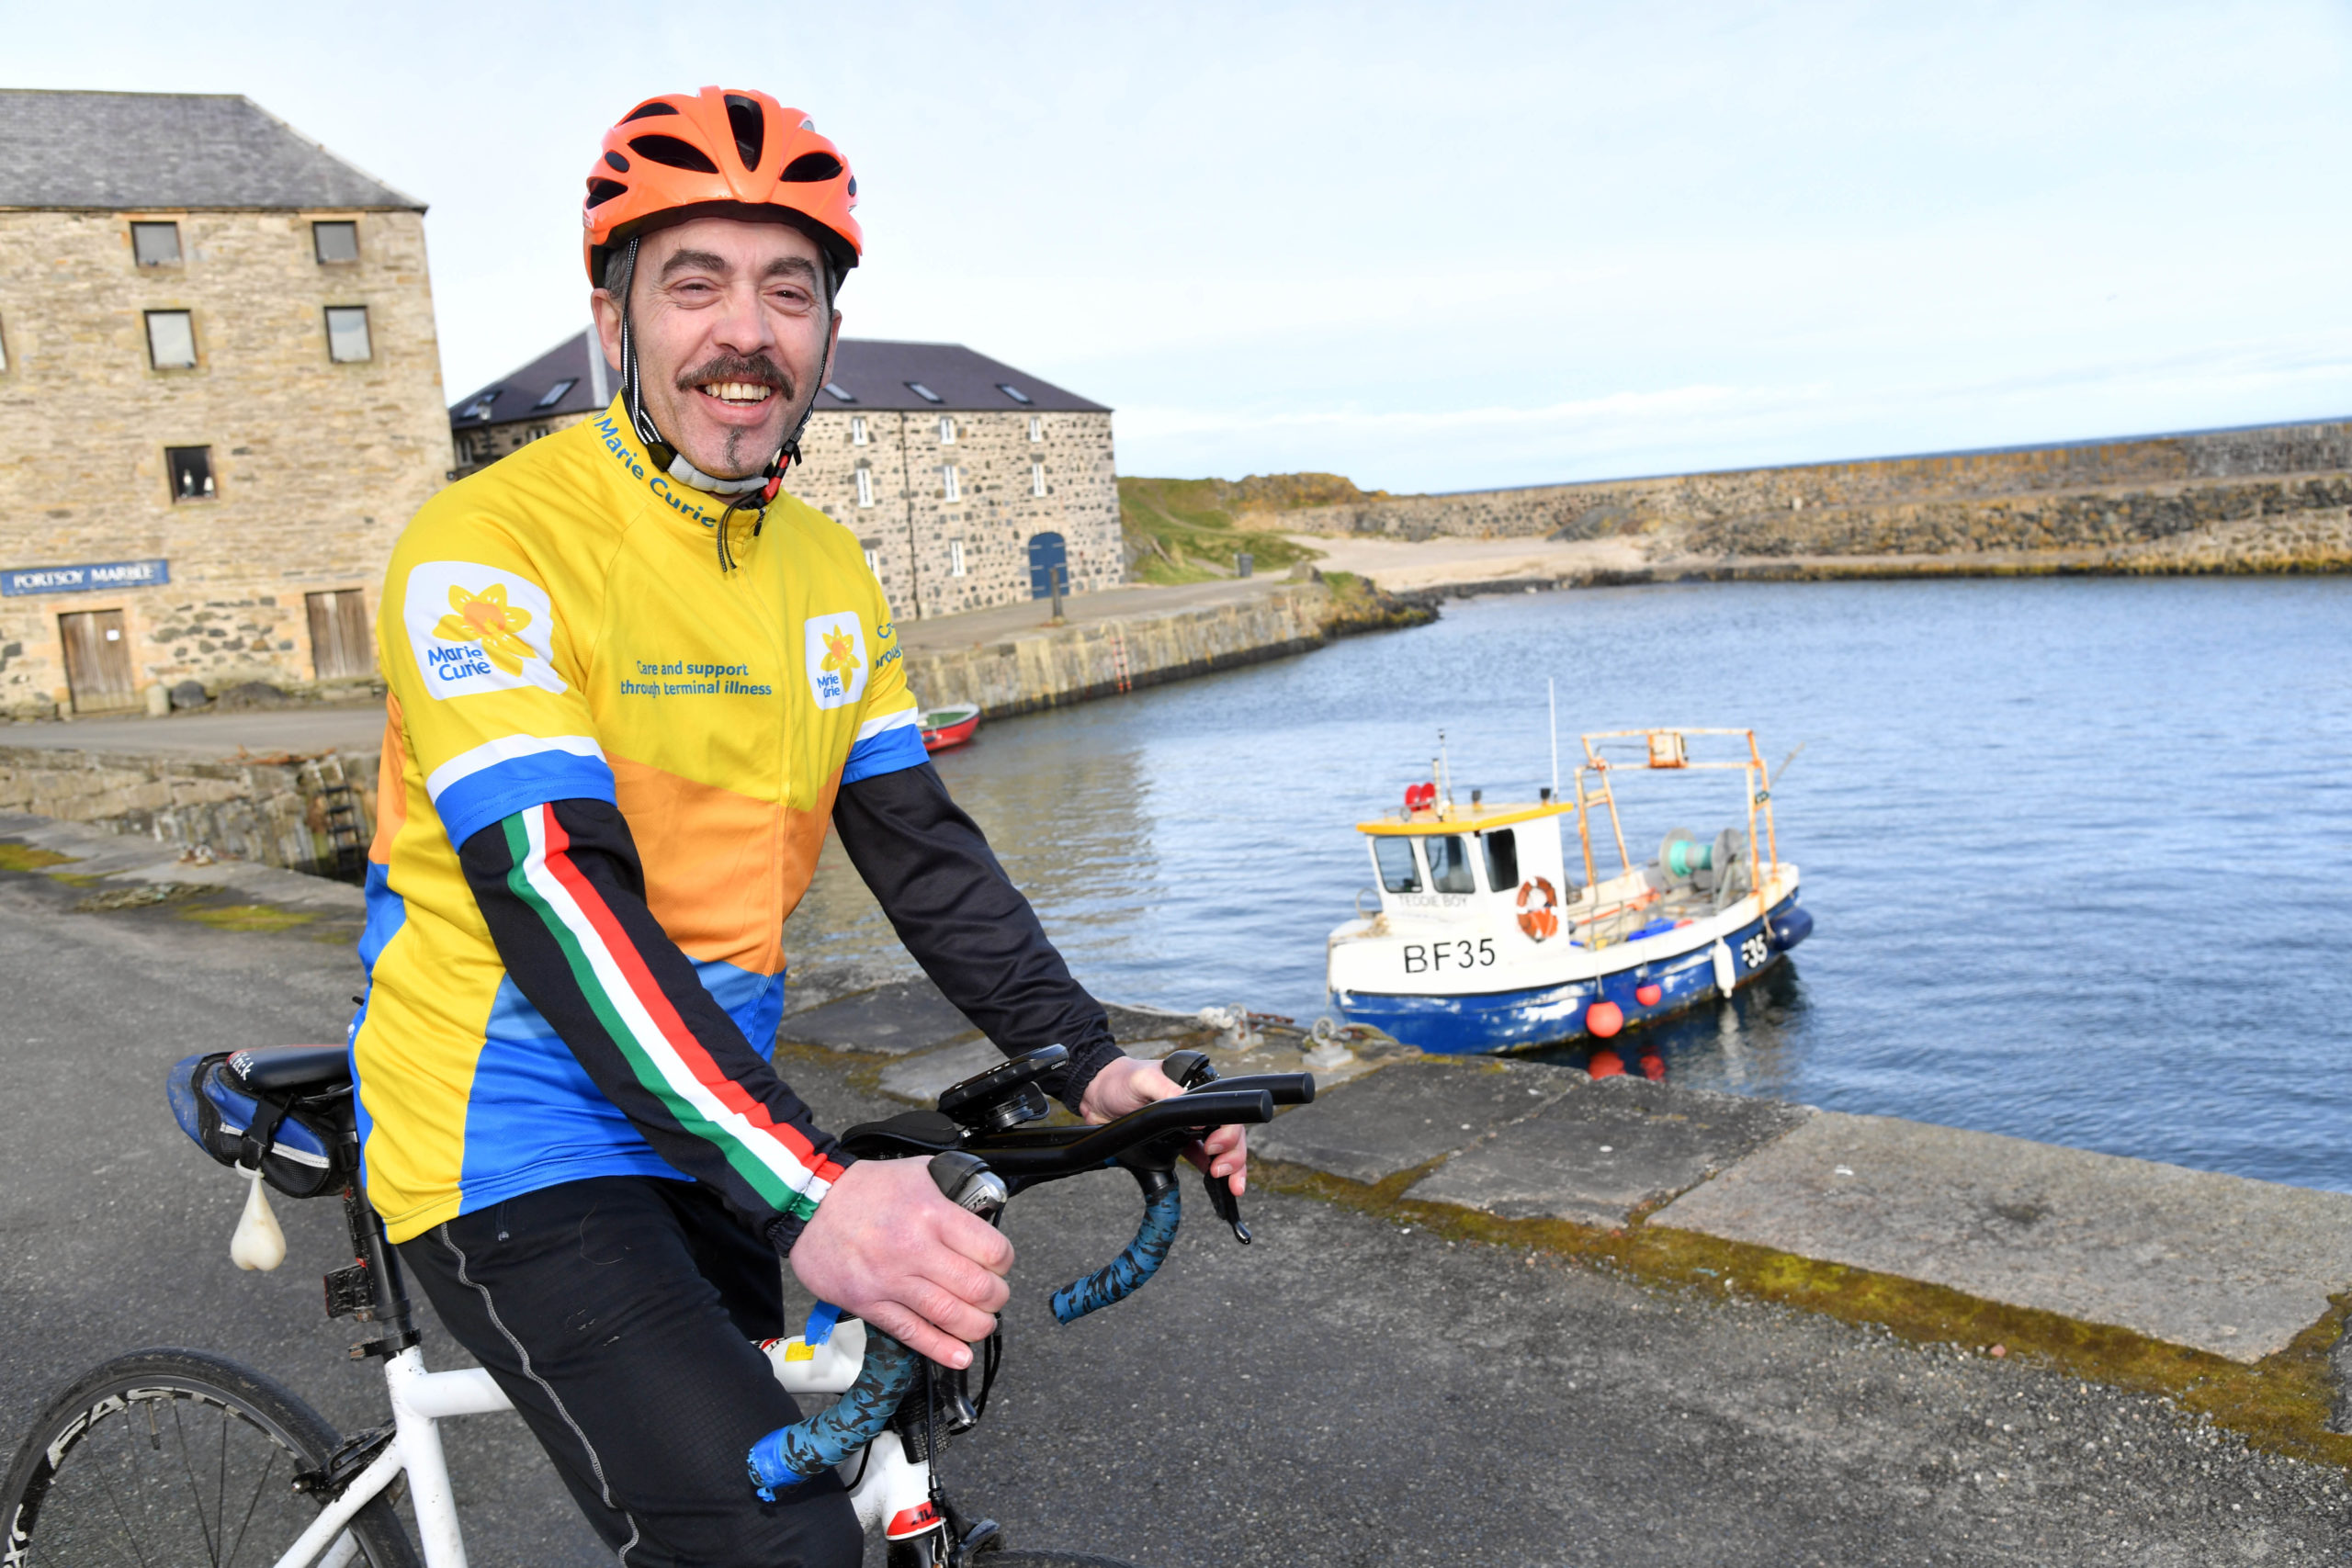 Chris Wishart-Turner is planning to cycle from John O'Groats to Edinburgh to raise funds for Marie Curie.